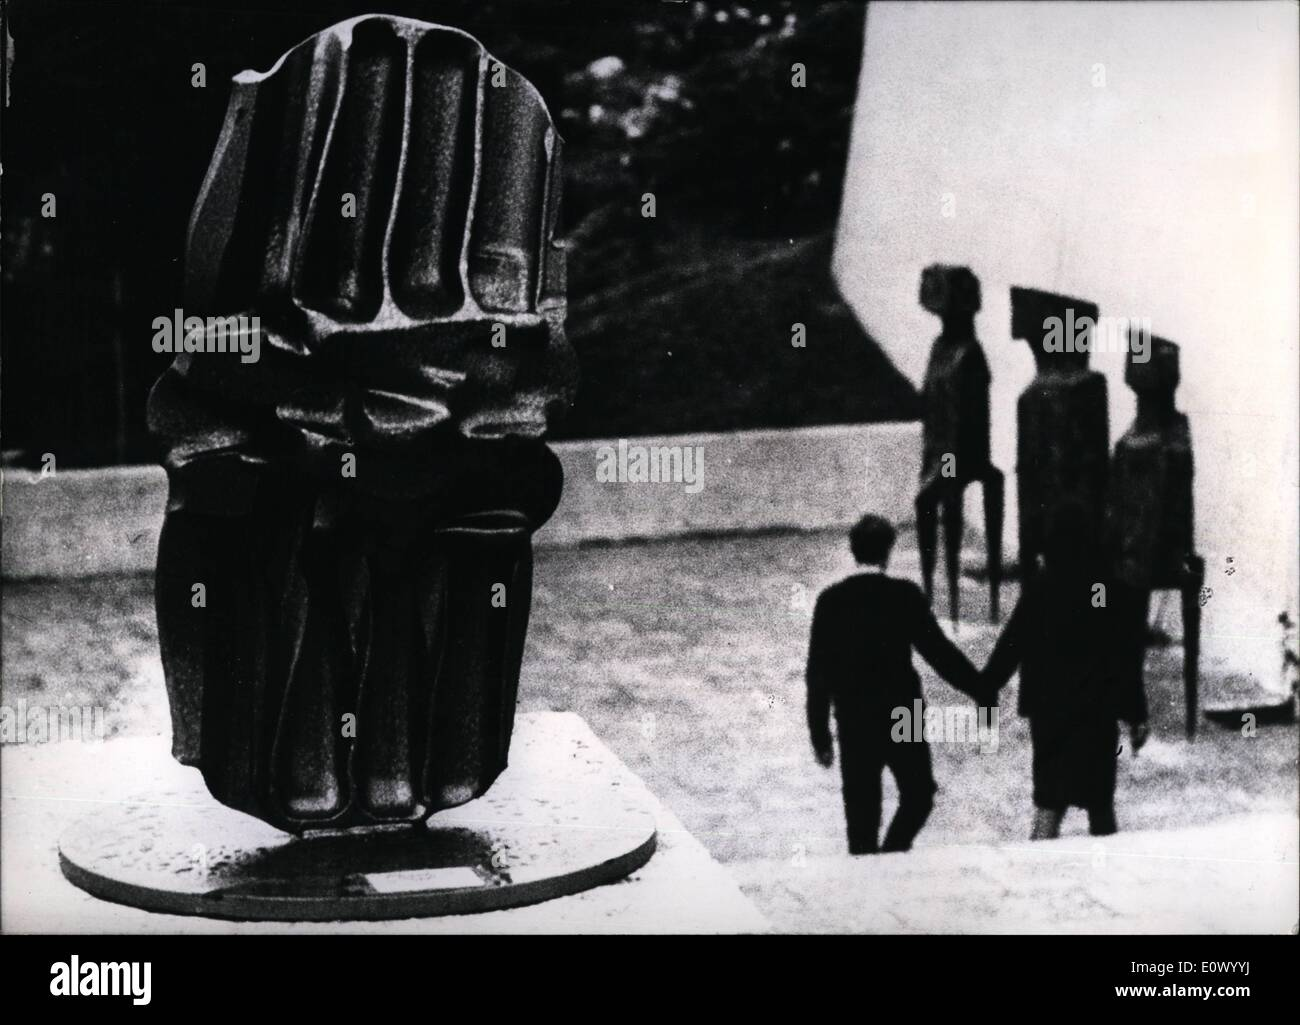 Jul. 07, 1964 - ''Phantasy of steel''. is the name given to this ''plastic'' by the workmen of a forgery in Kassel, Germany. The giant steel block has lost its form under a hammer in the factory. So the workmen decided to polish it, put it on a scole and exhibit it in the famous ''documenta III'' at Kassel, where famous artists from all over the world show their sculptures, painting and plastics. But the documenta-direction did not accept their ''sculpture'' as a work of art and let it remove from the exhibit grounds - Stock Image